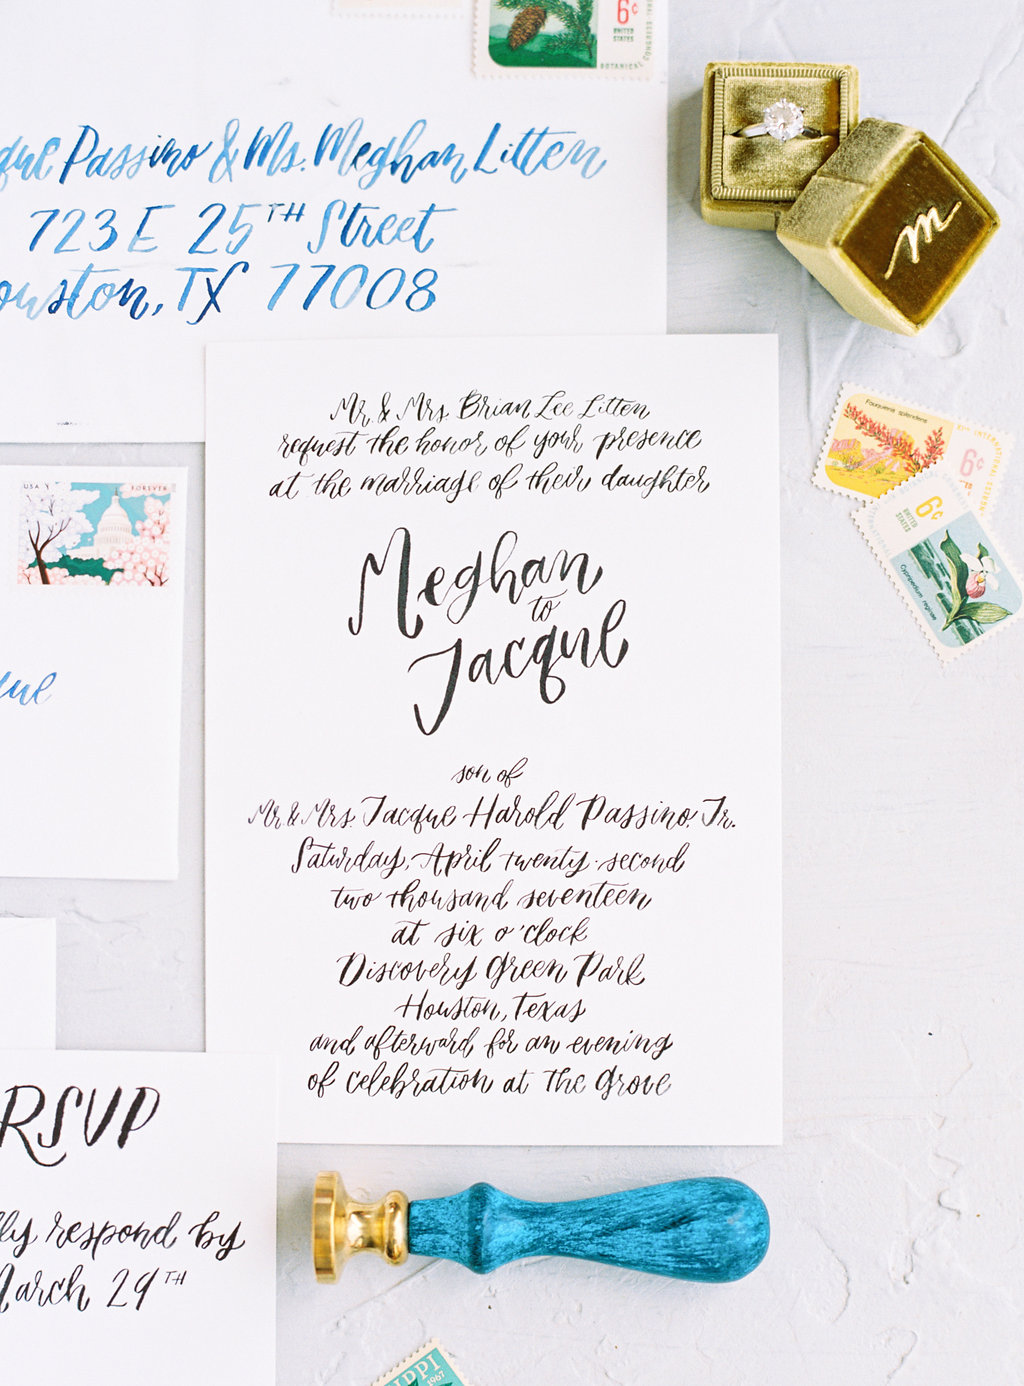 wedding invitation calligraphy for meghan and jacque